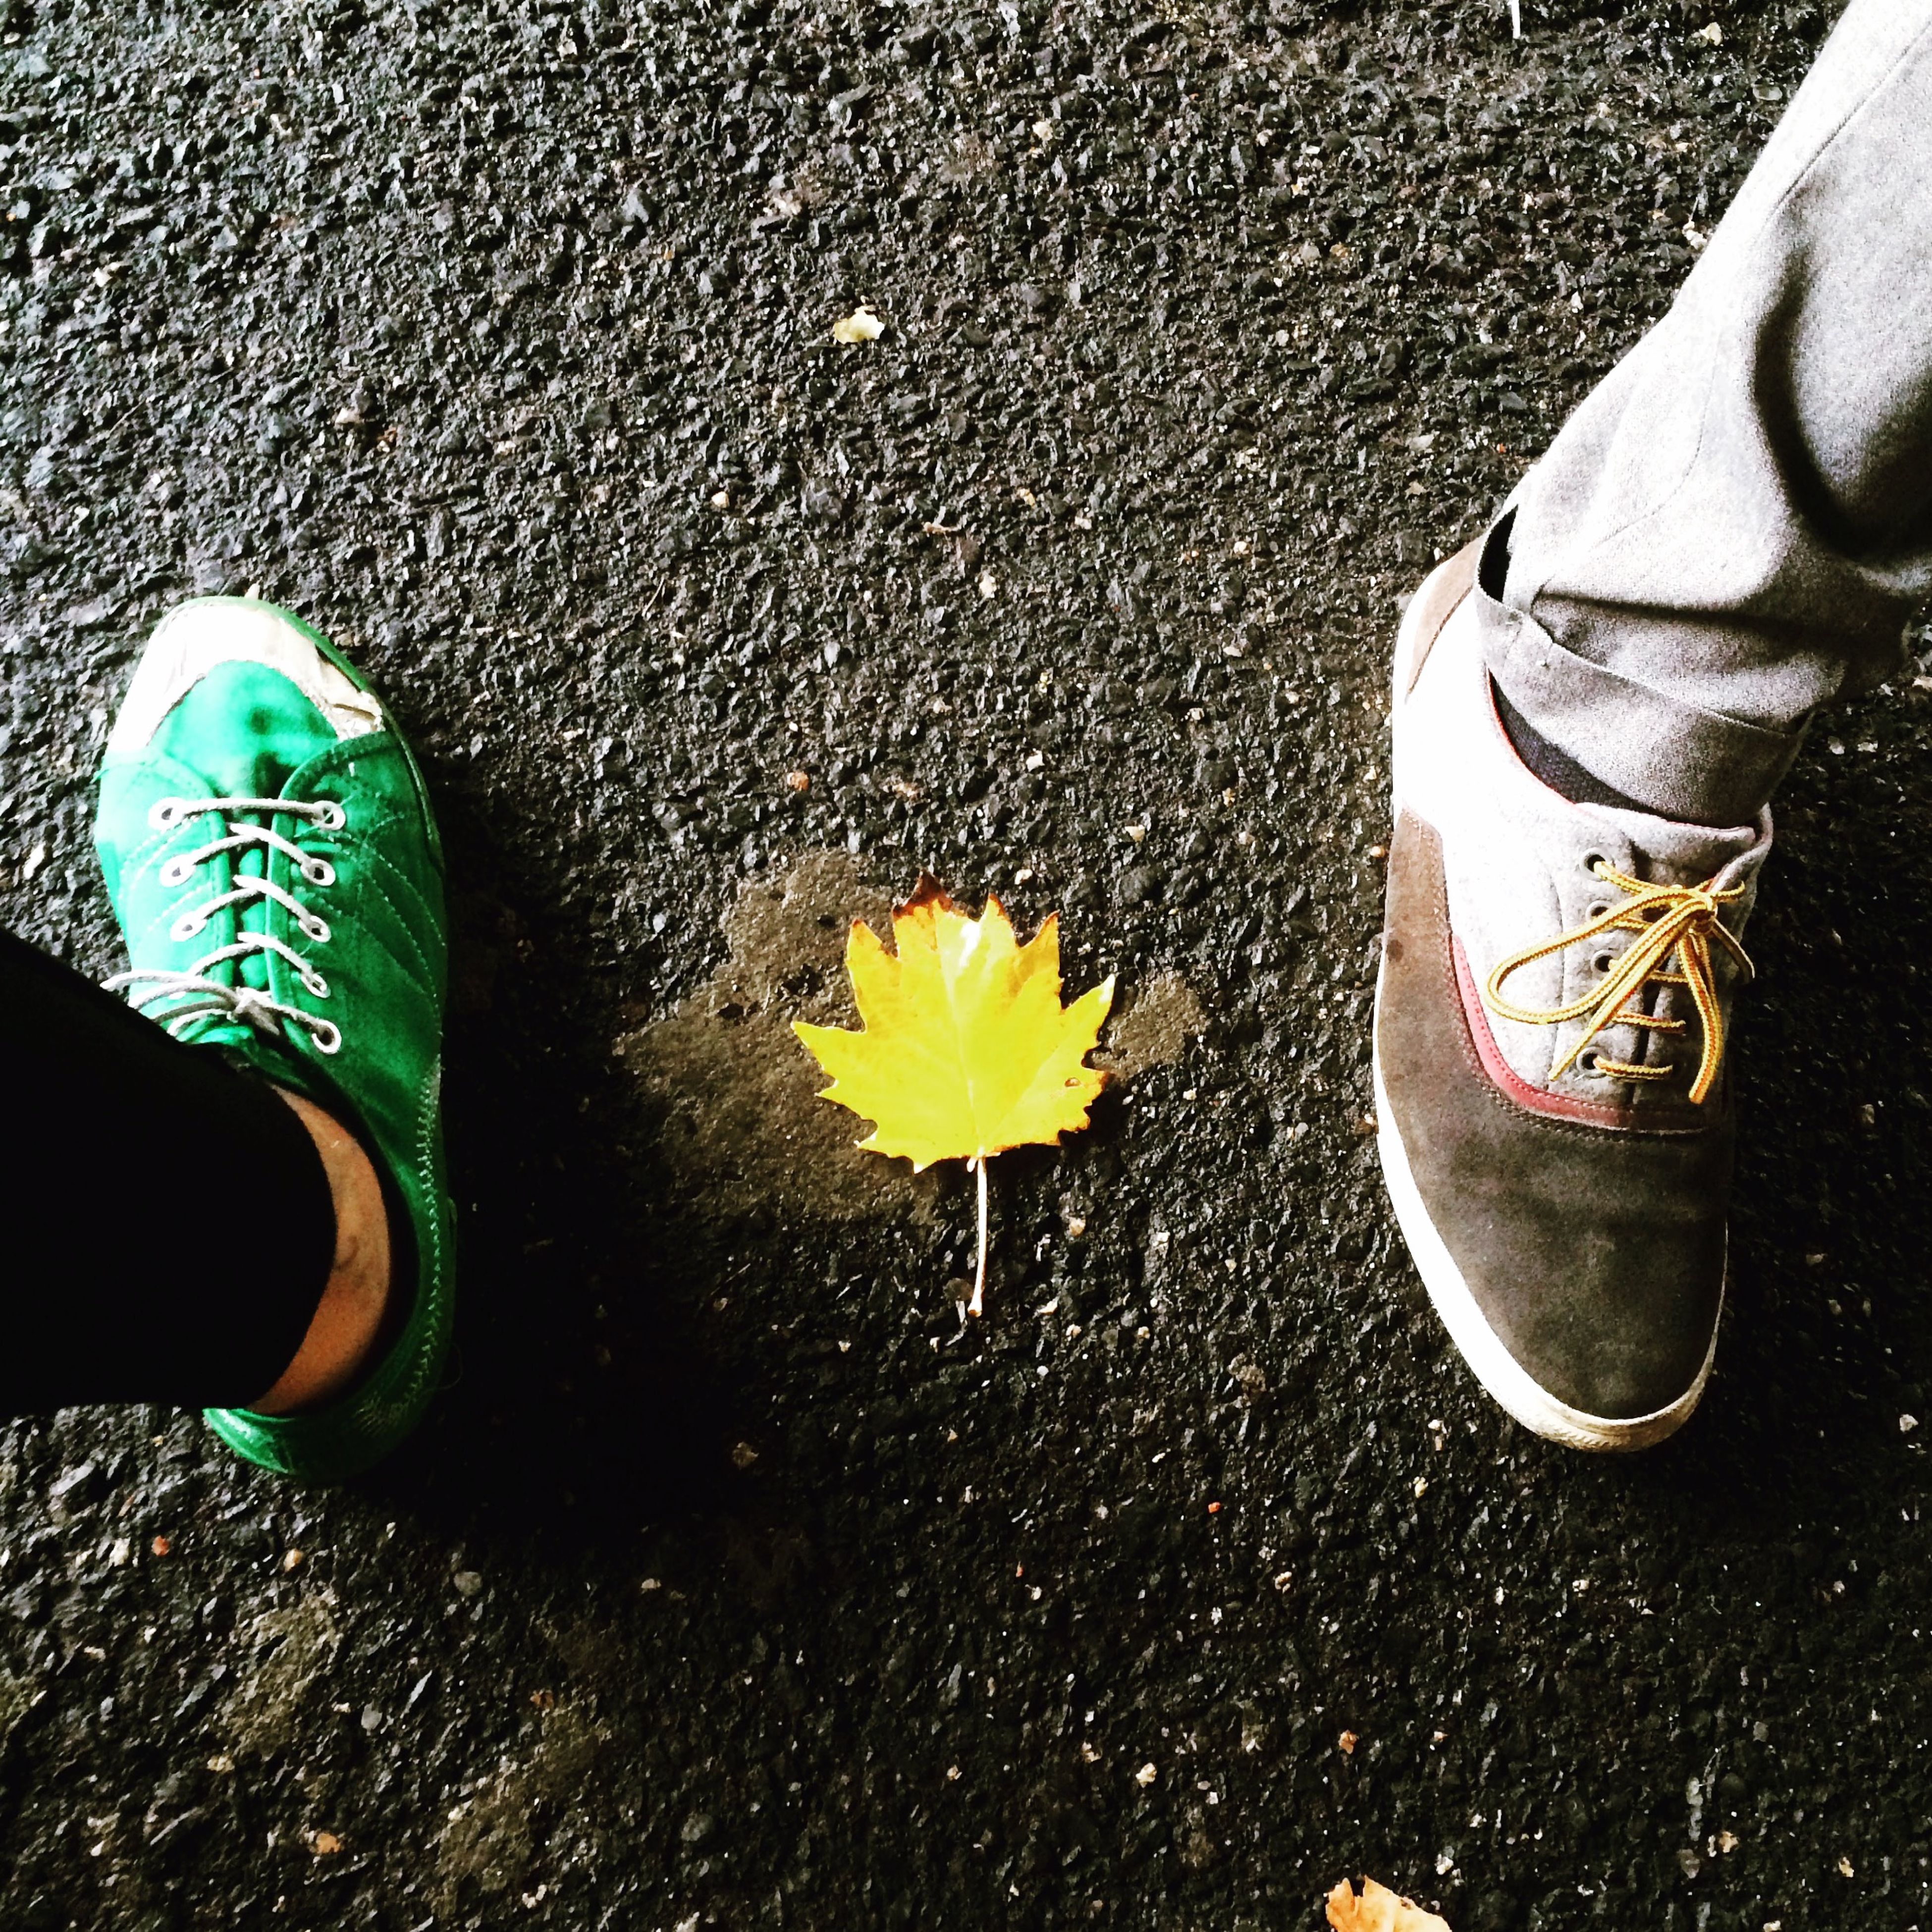 shoe, low section, person, high angle view, street, footwear, personal perspective, human foot, standing, pair, yellow, canvas shoe, asphalt, flower, road, leaf, part of